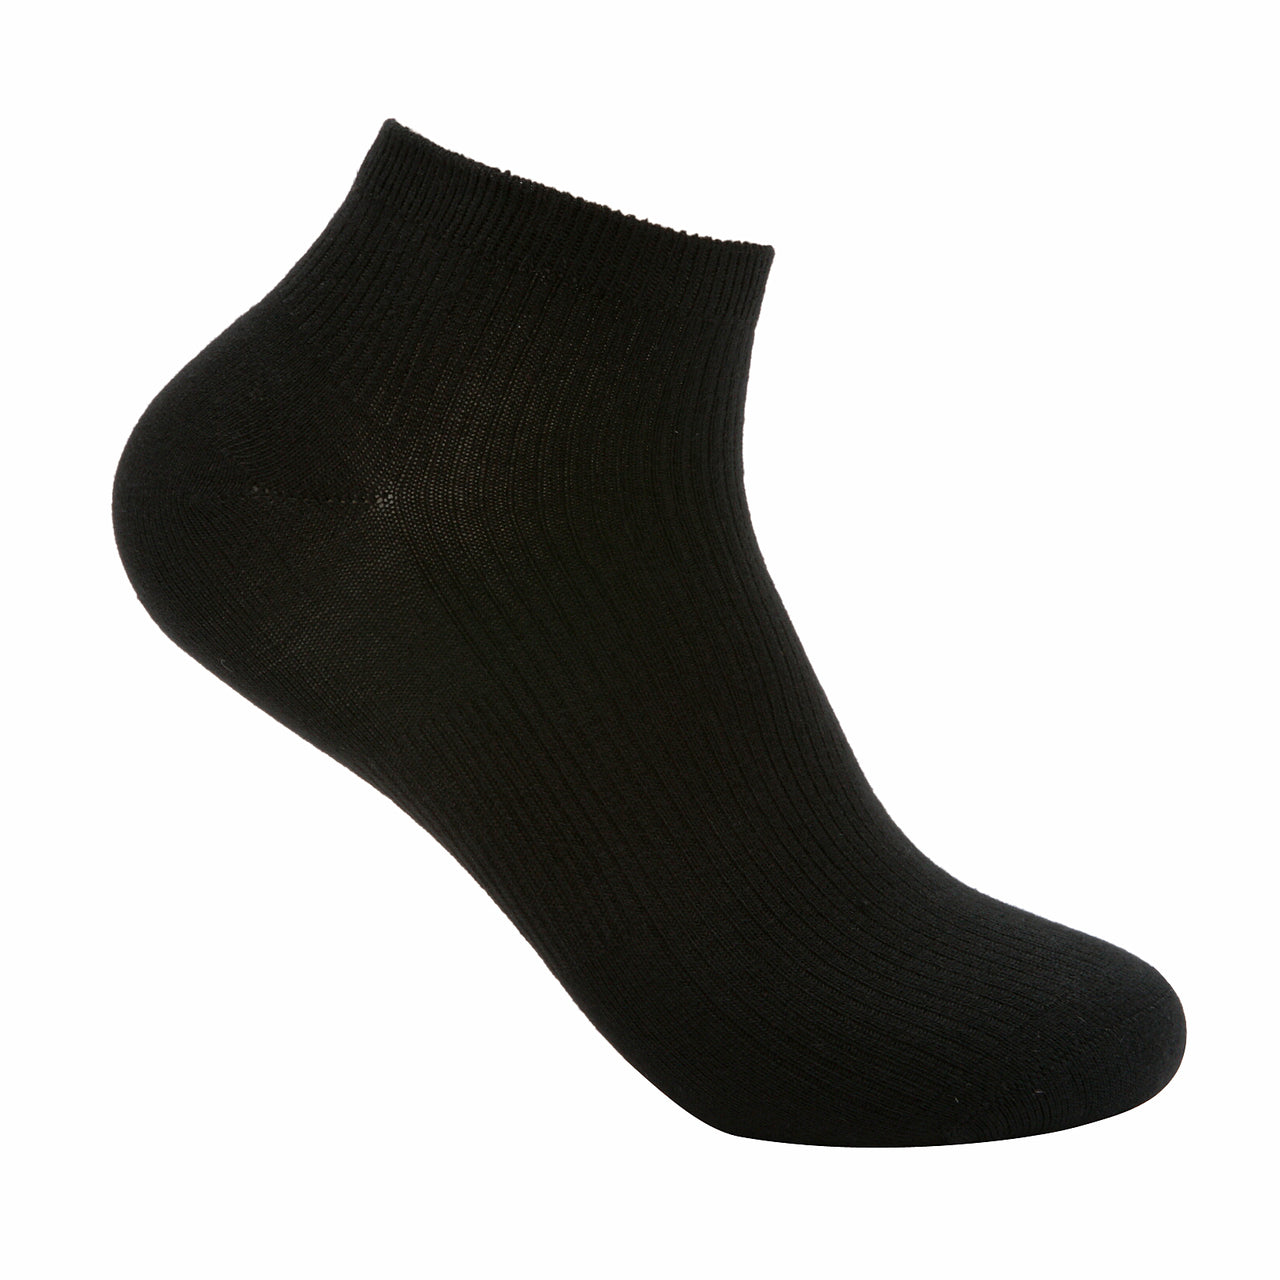 Hiltech Bamboo - Bamboo Ankle Socks 2 Pack